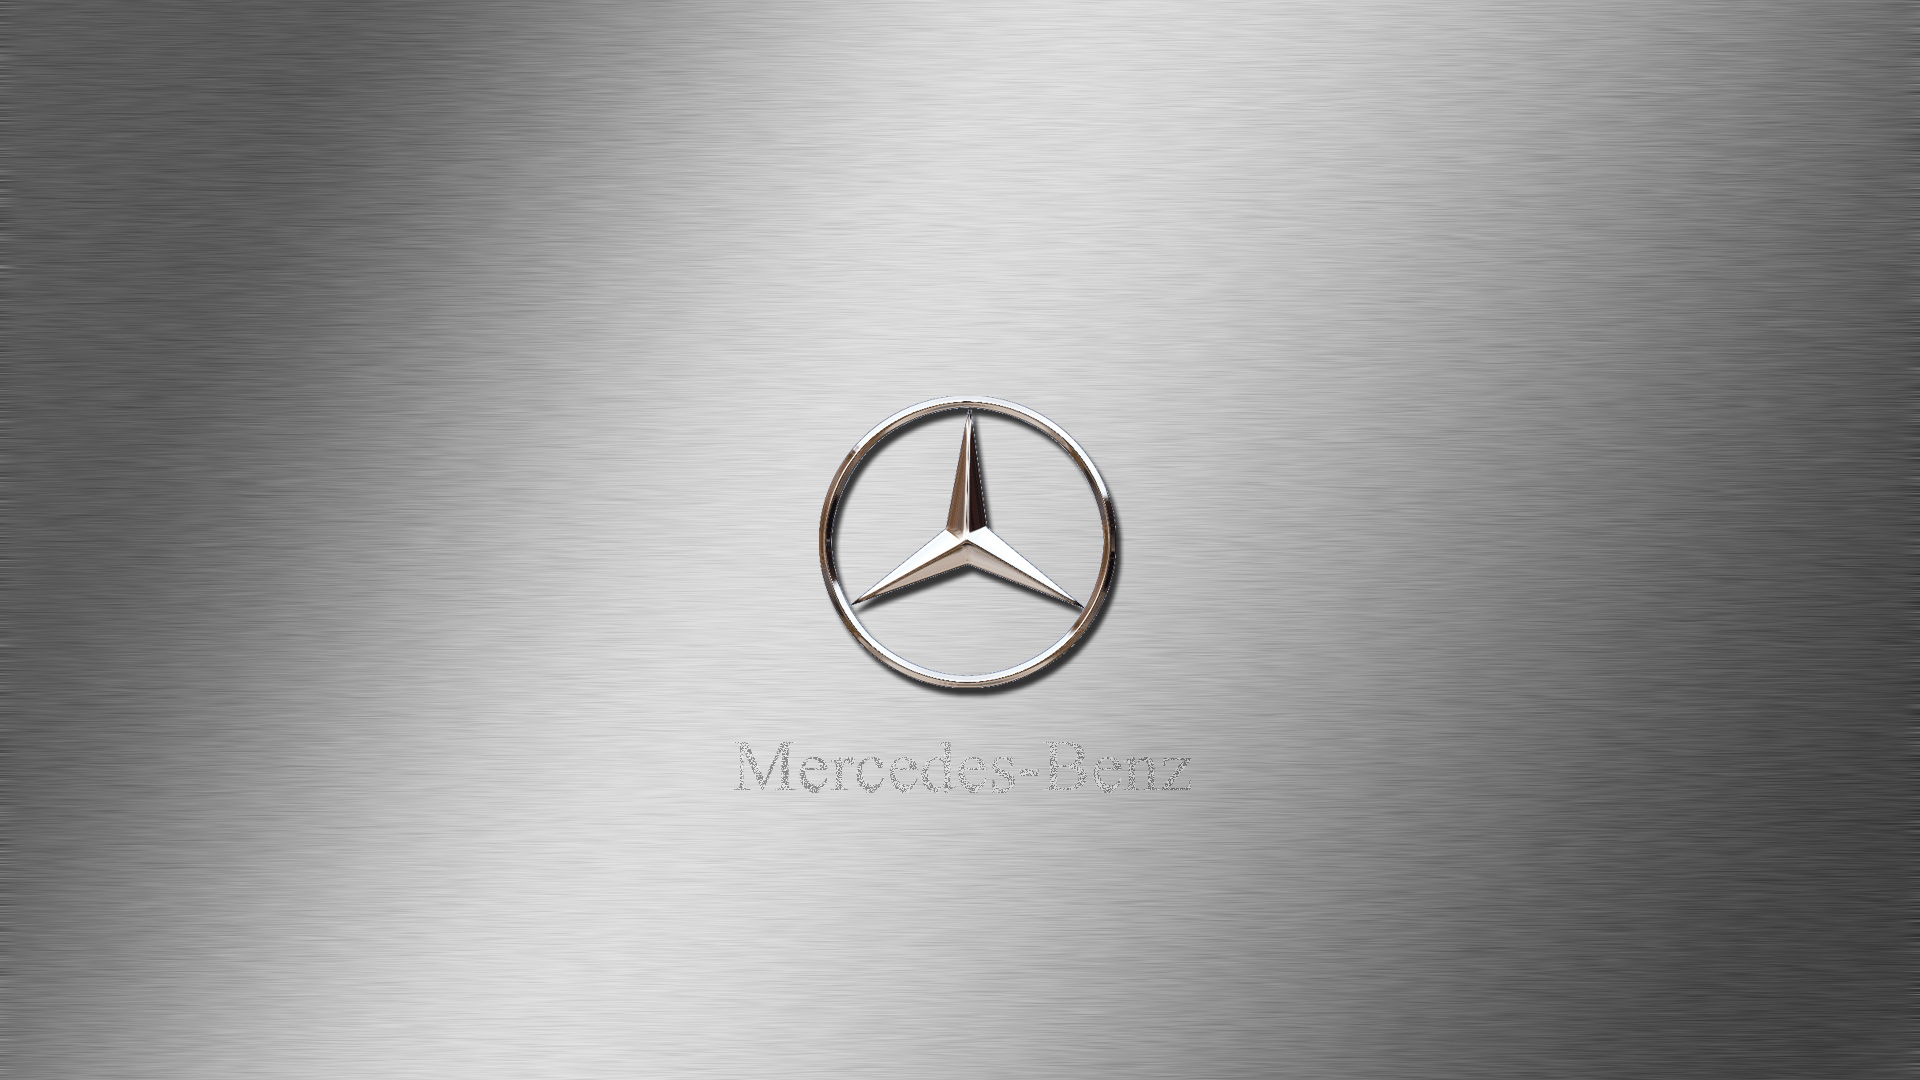 benz logo wallpapers wallpaper - photo #11